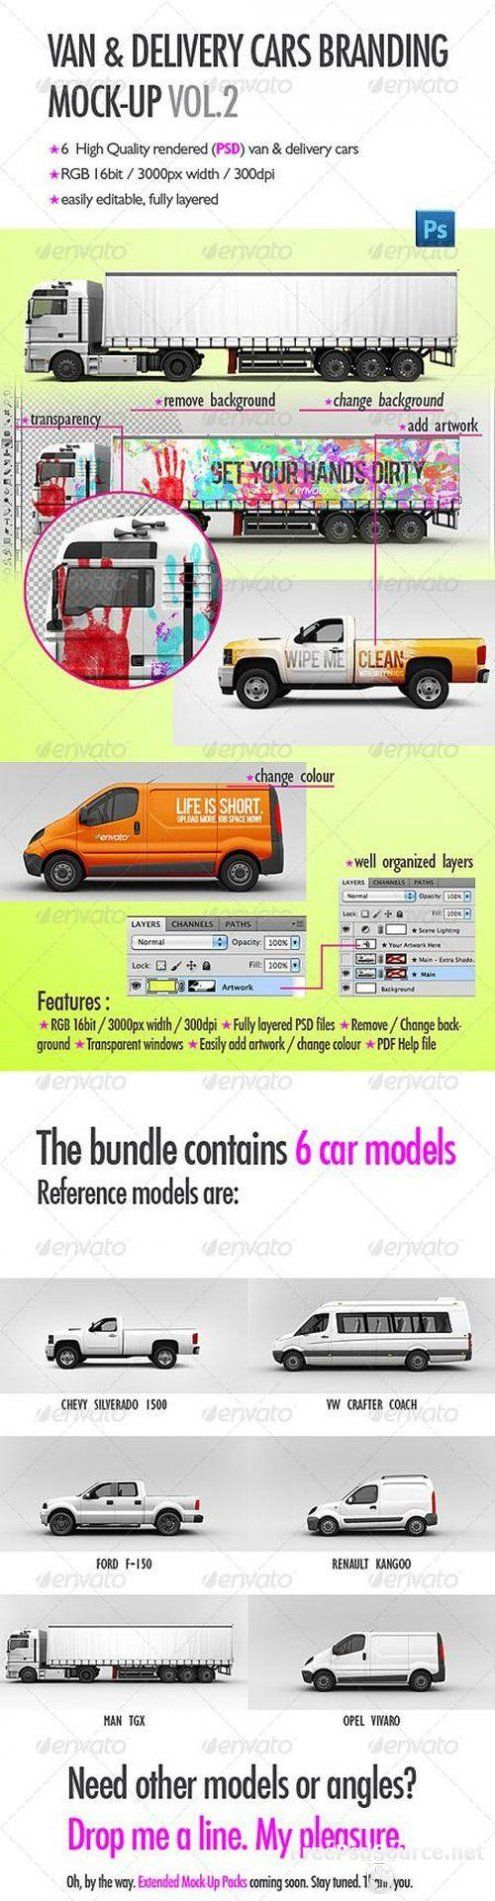 Psd sources Van & Delivery Cars Branding Mock-Up Vol 2 Download,PSD free GraphicRiver Download